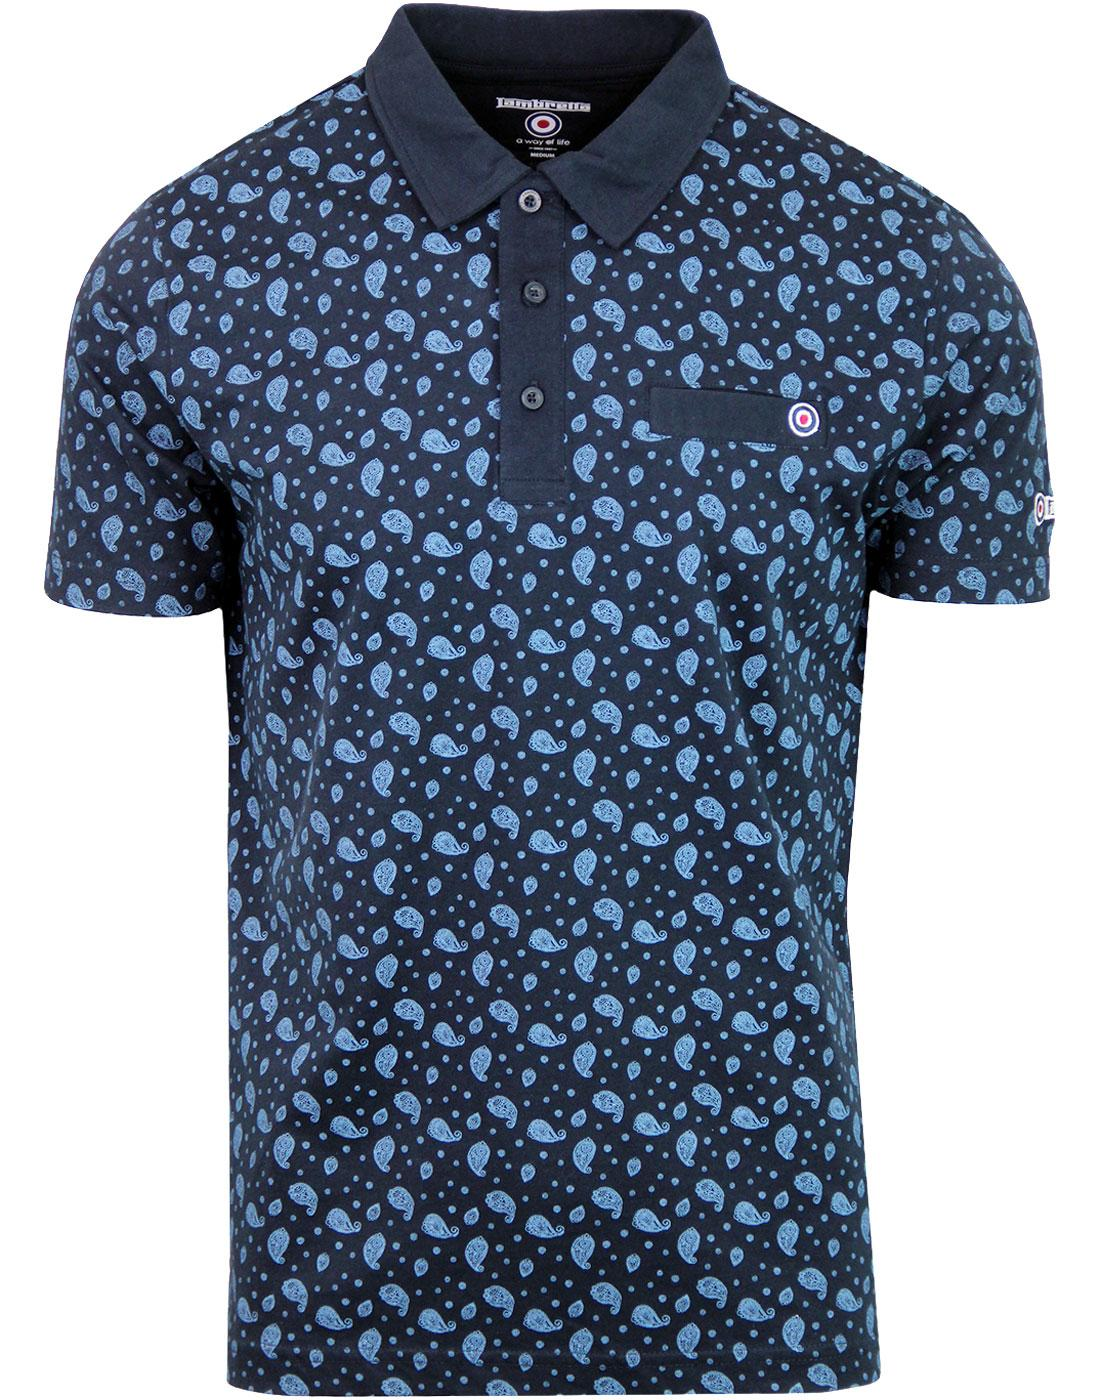 LAMBRETTA All Over Paisley Print Jersey Polo NAVY